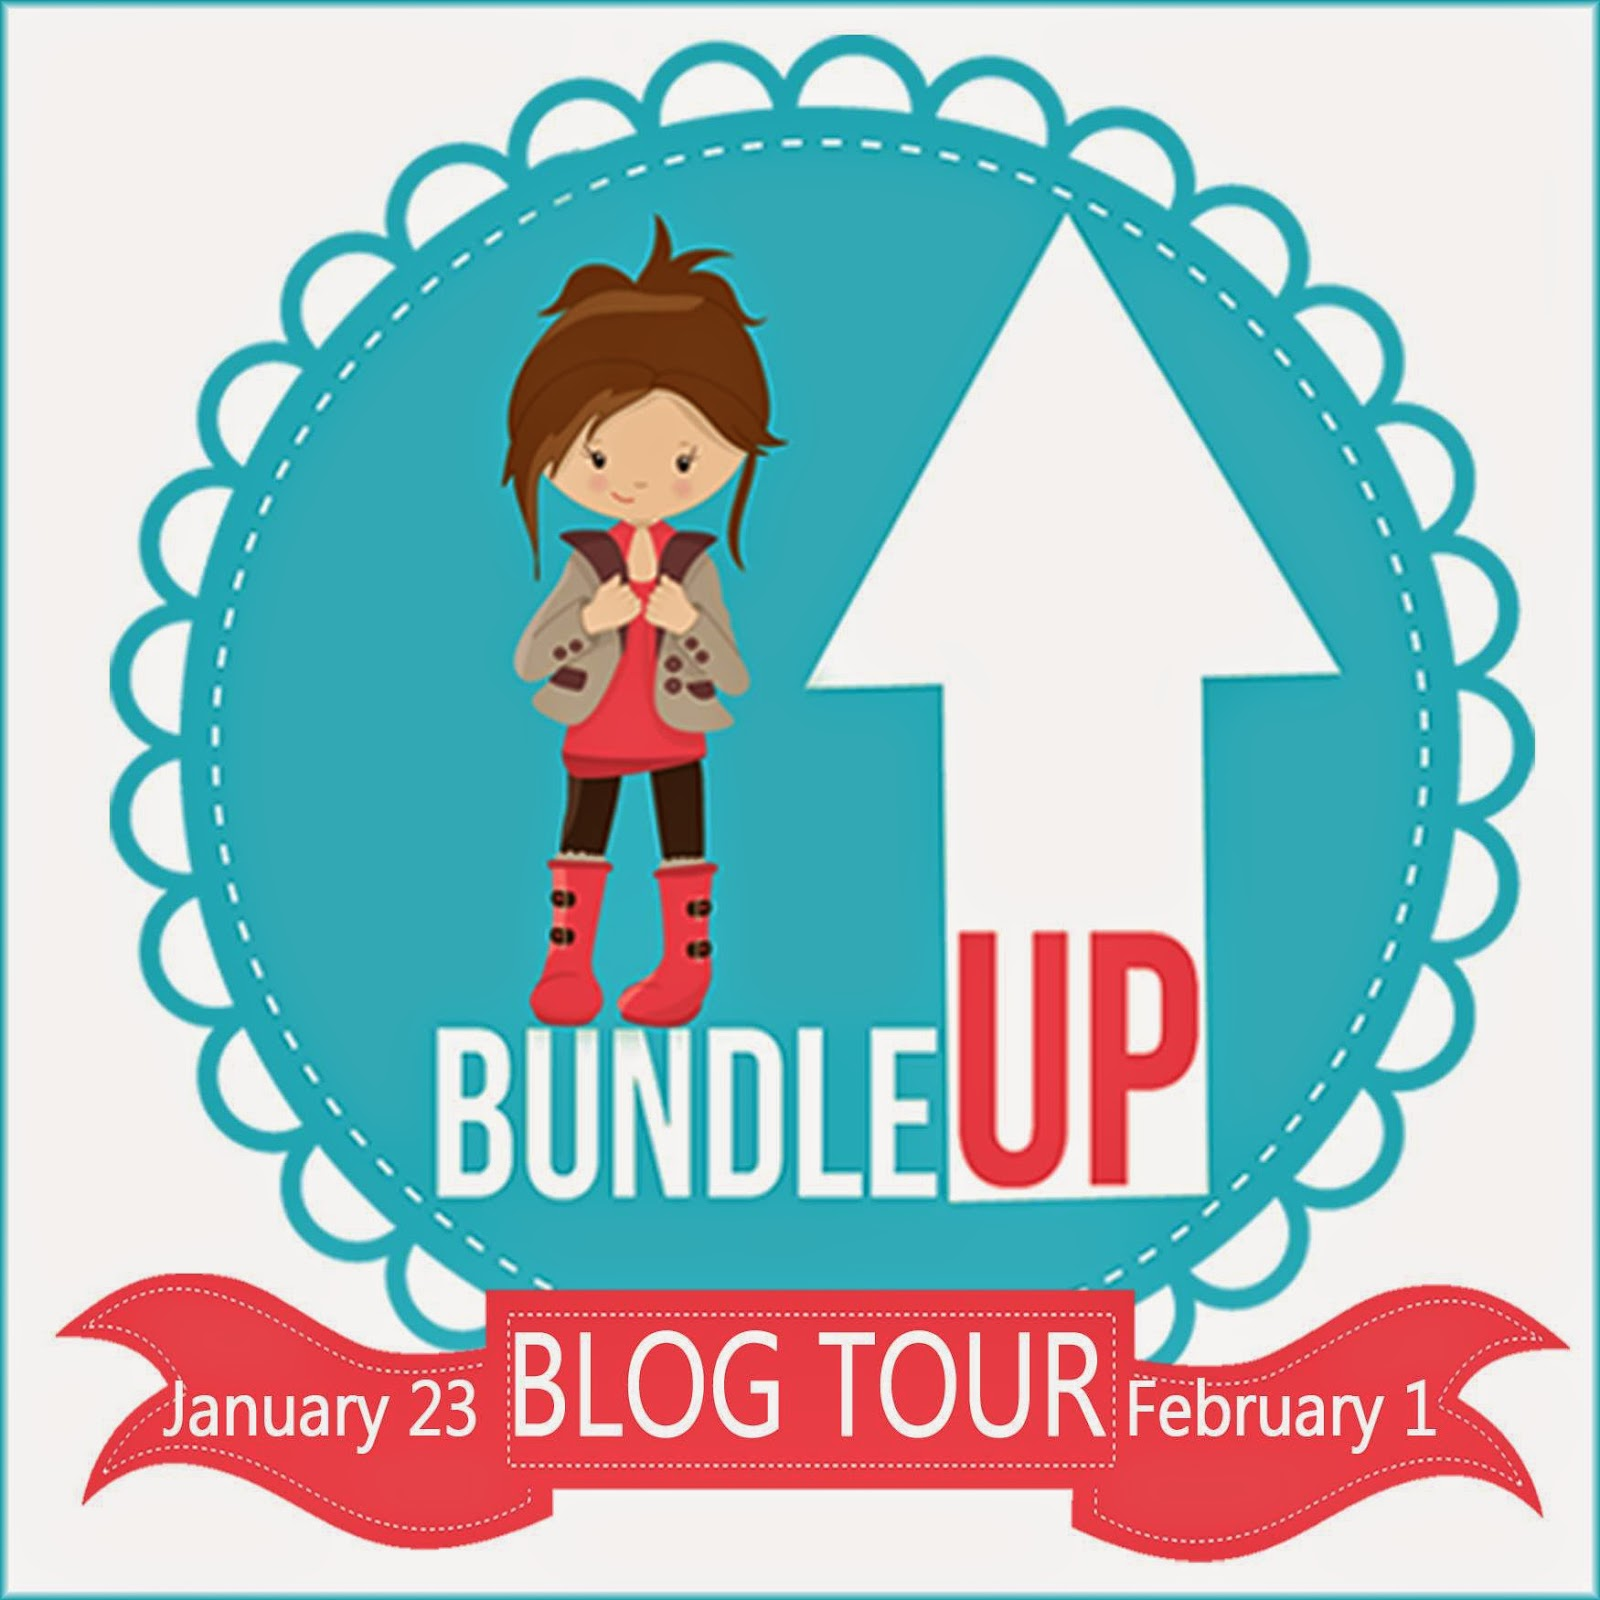 http://patternrevolution.com/blog/2015/1/19/bundle-up-girls-blog-tour